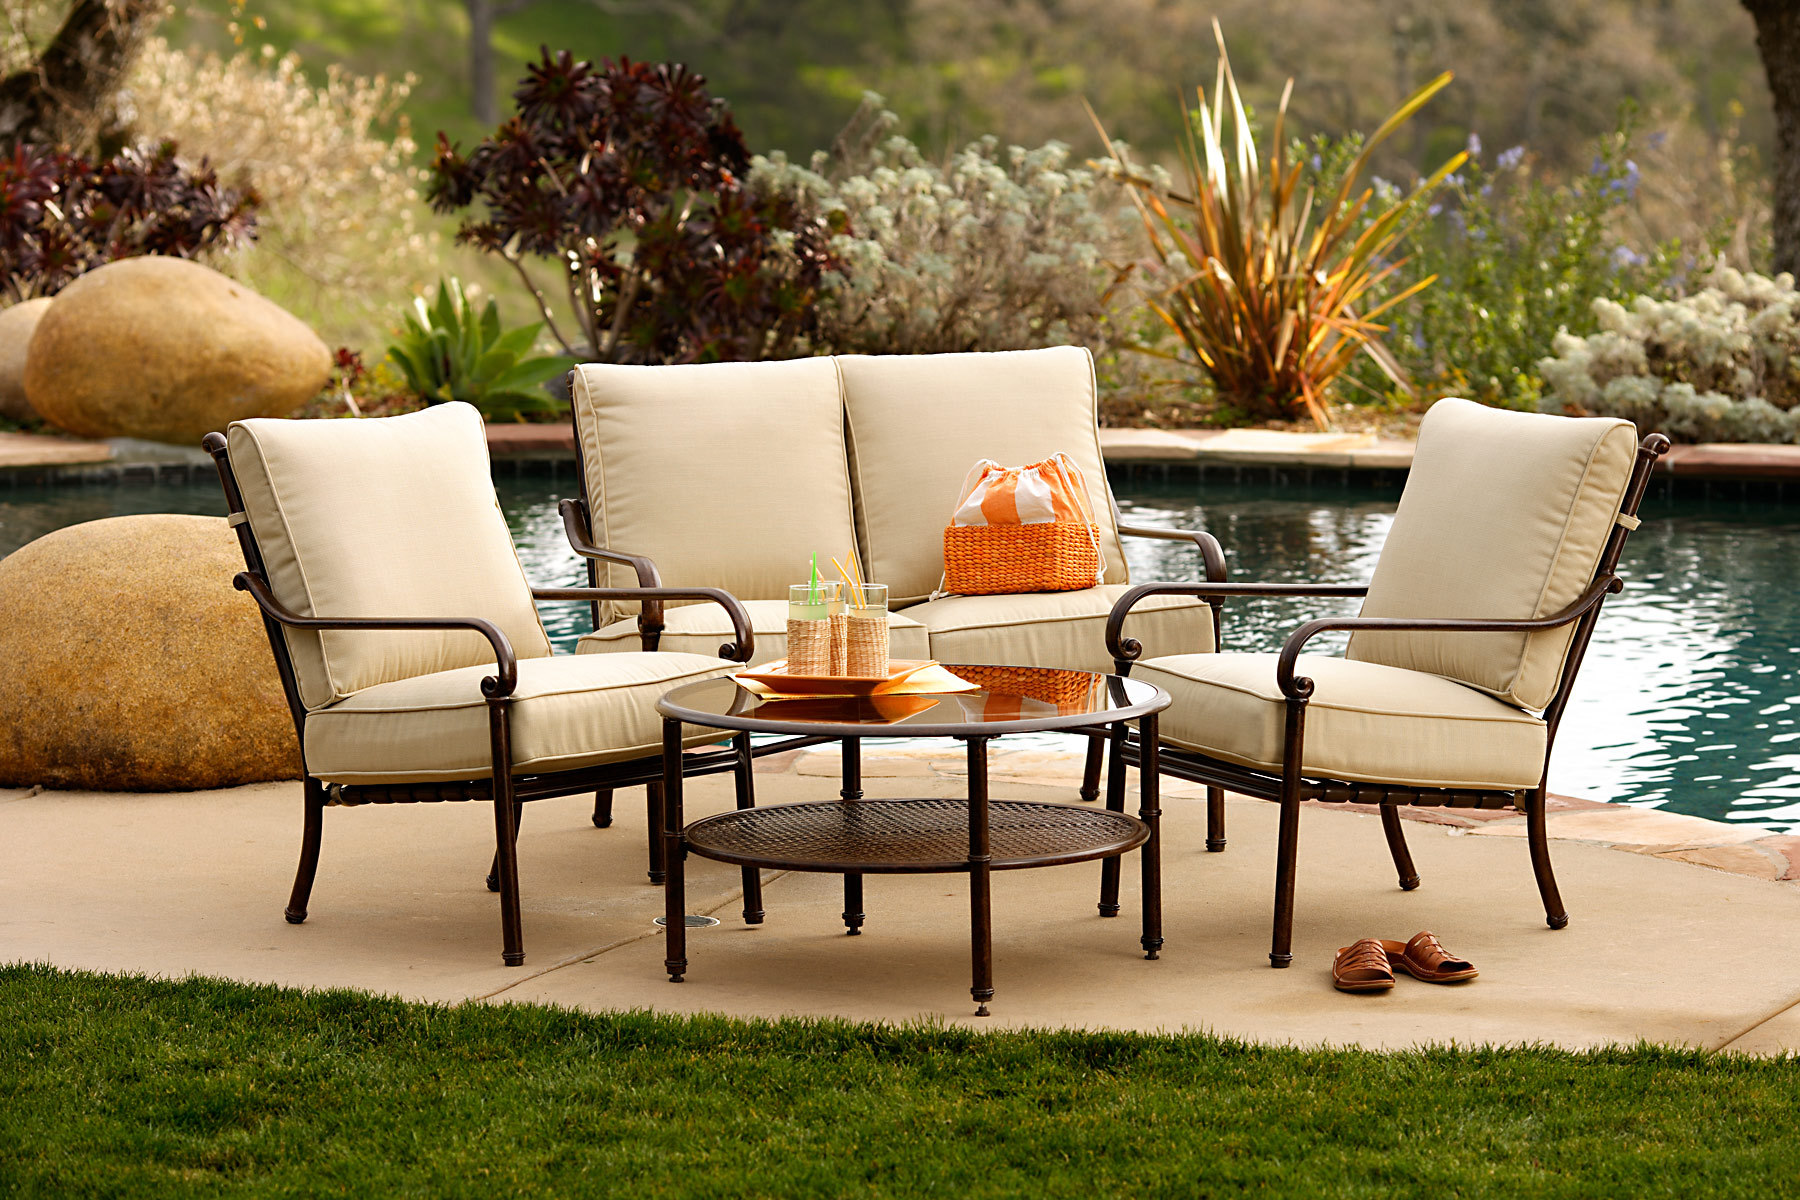 220_1outdoor_furniture.jpg